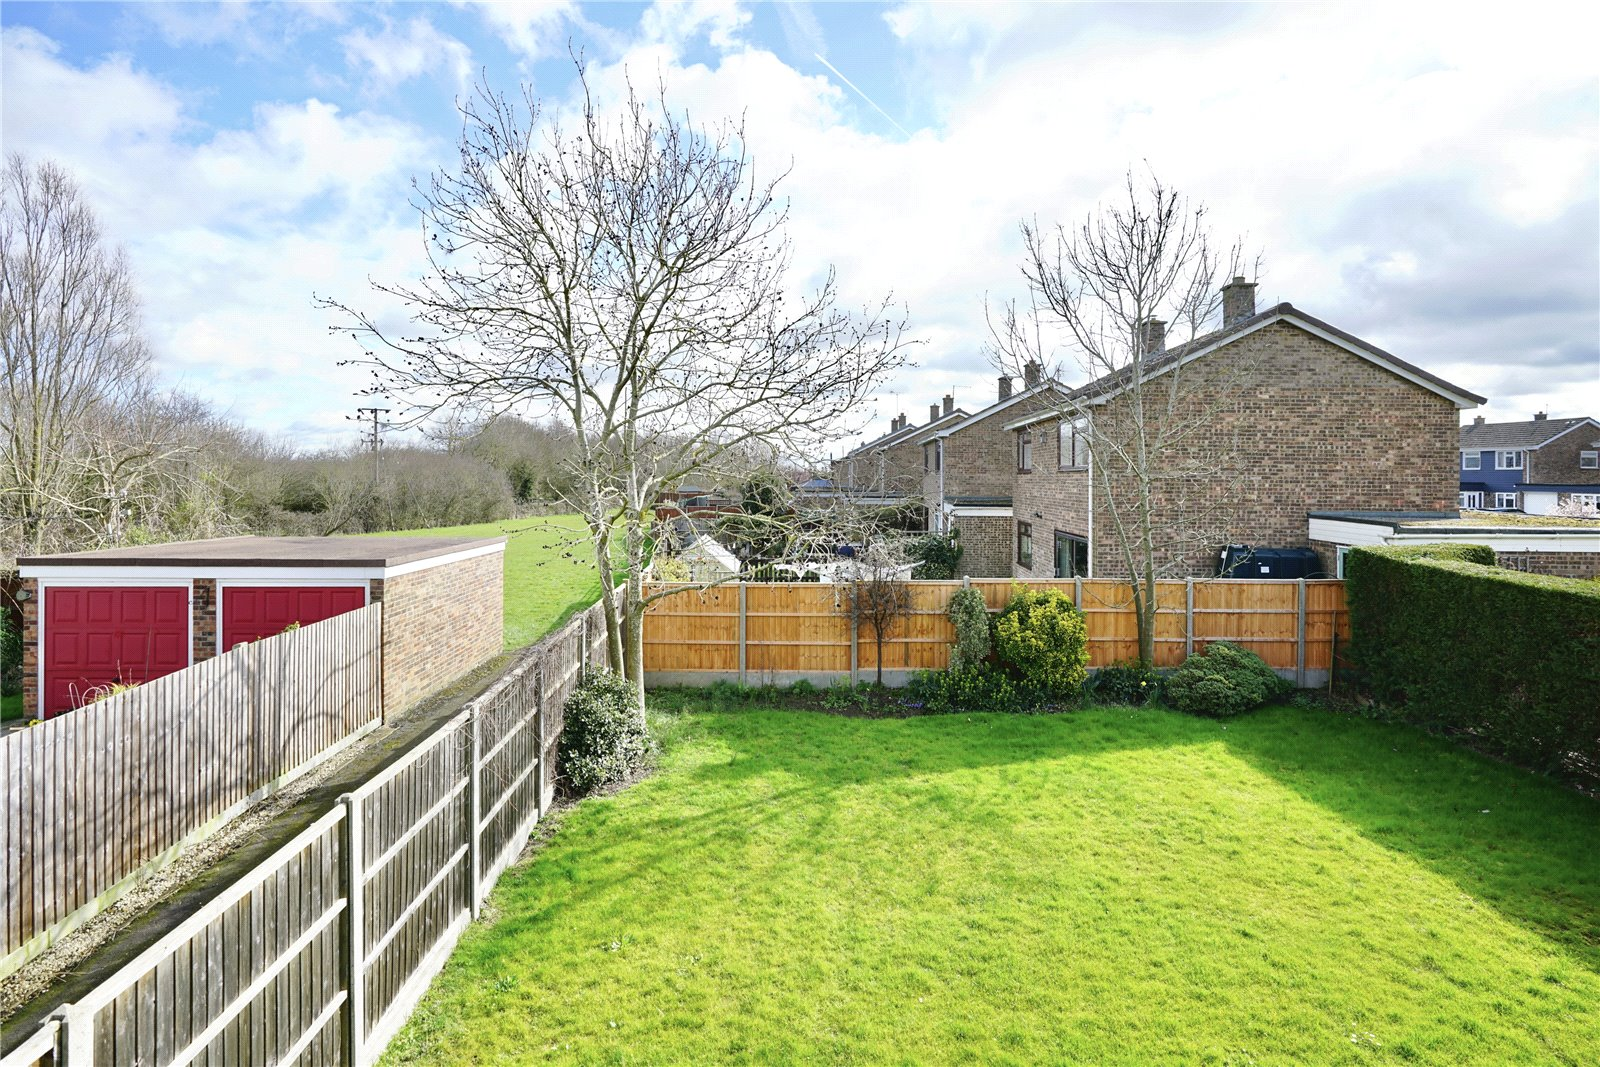 4 bed house for sale in Manor Close, Great Staughton  - Property Image 13